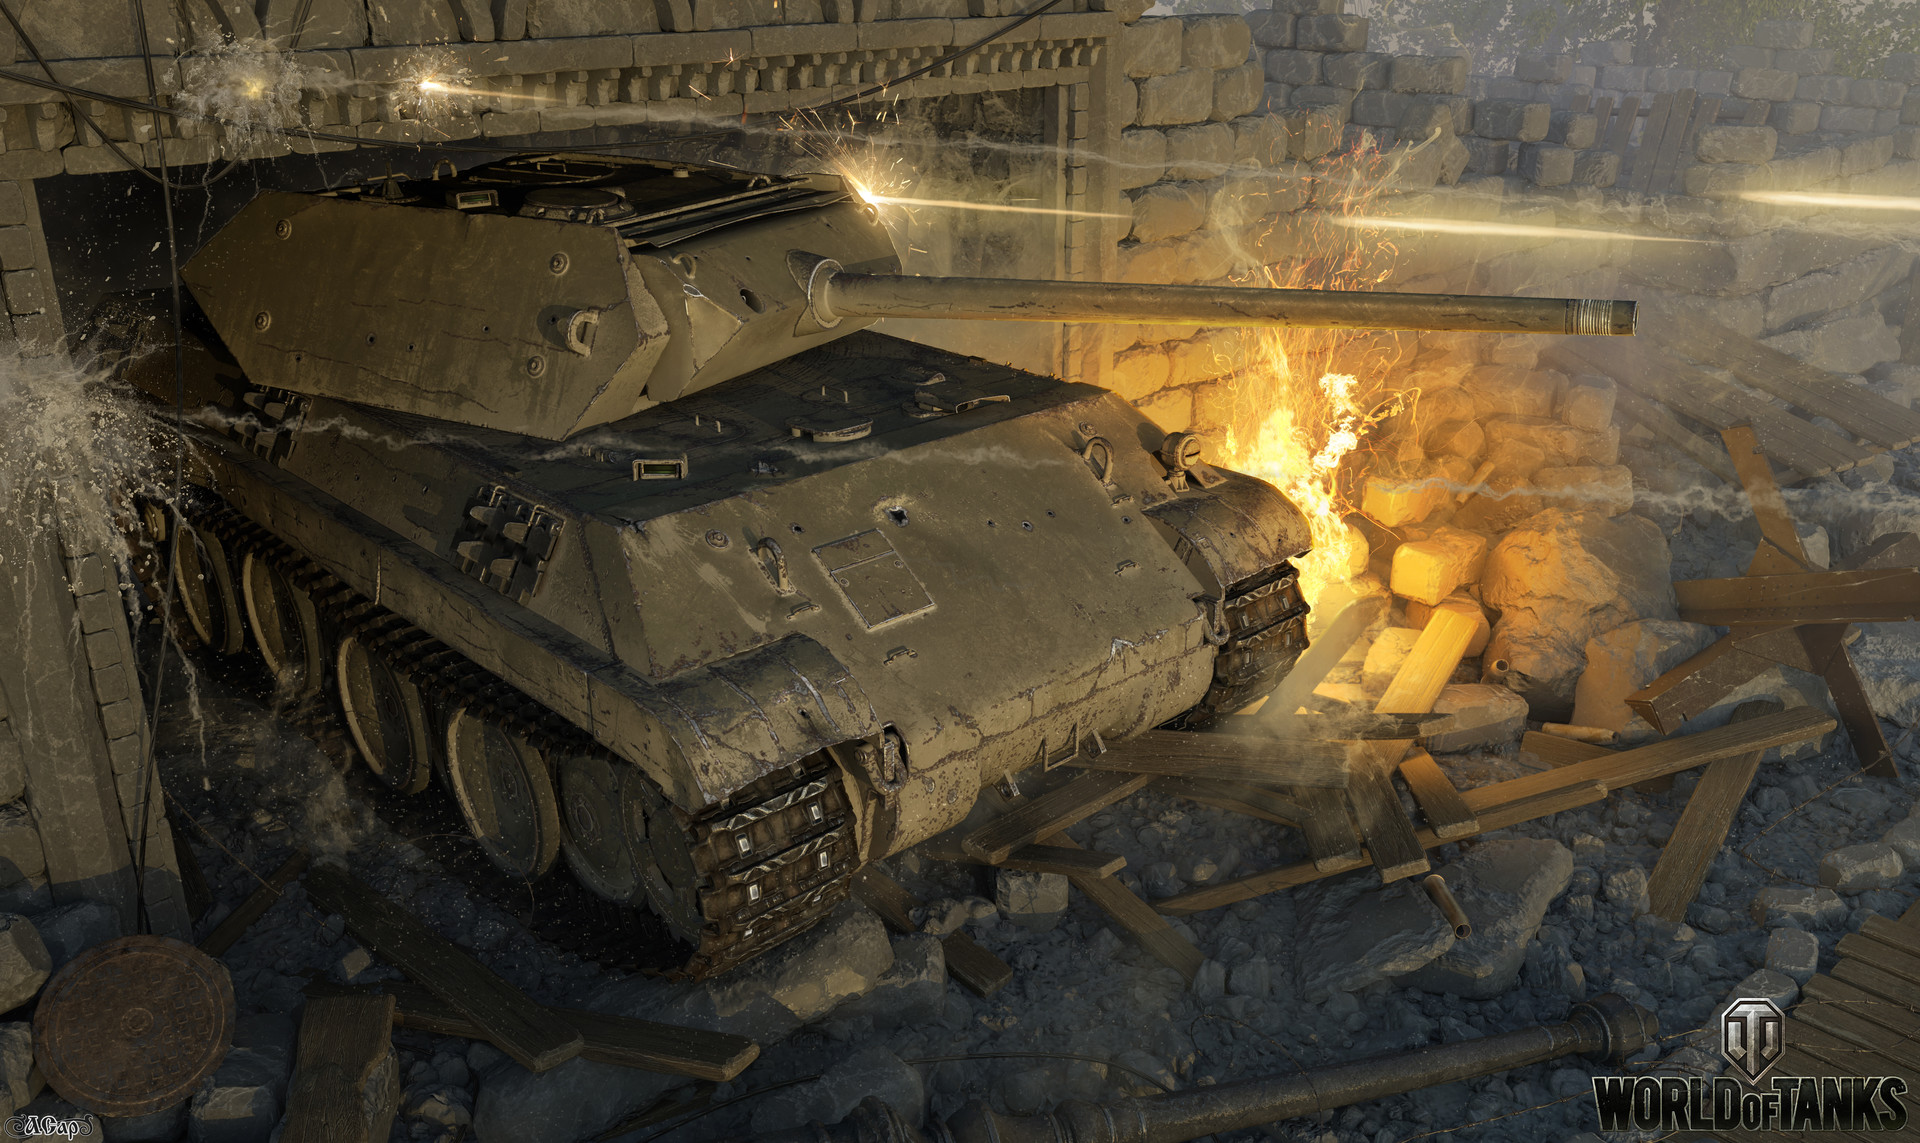 World of Tanks Artwork by Andrey Sarafanov